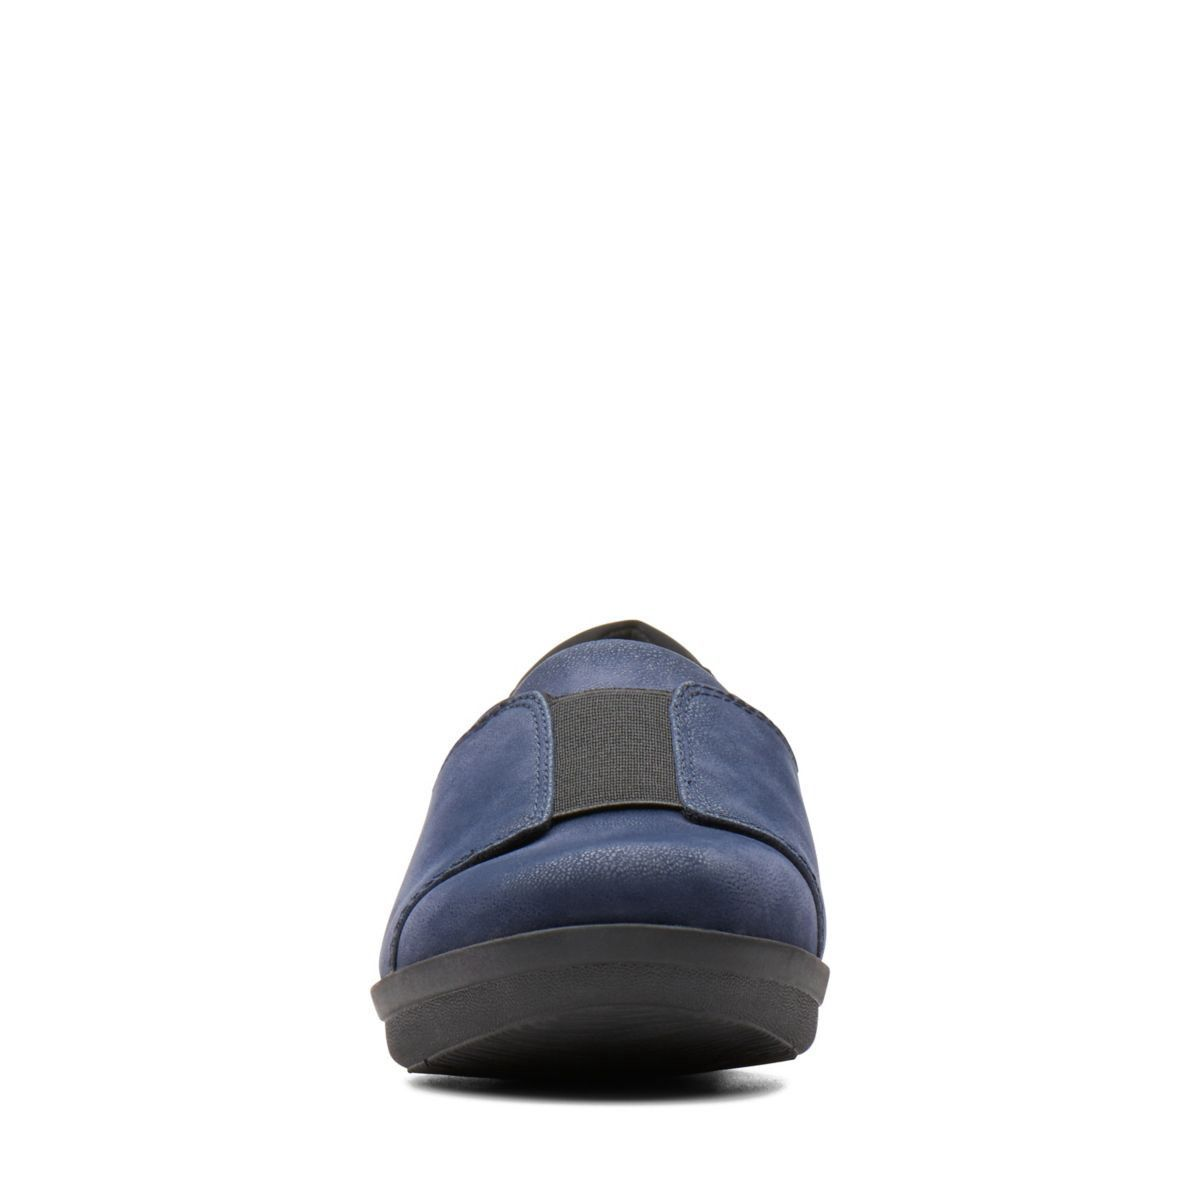 5b6ad984dc6 Clarks Ayla Band - Womens Shoes Navy 8 E (Wide)  womenshoesmules ...